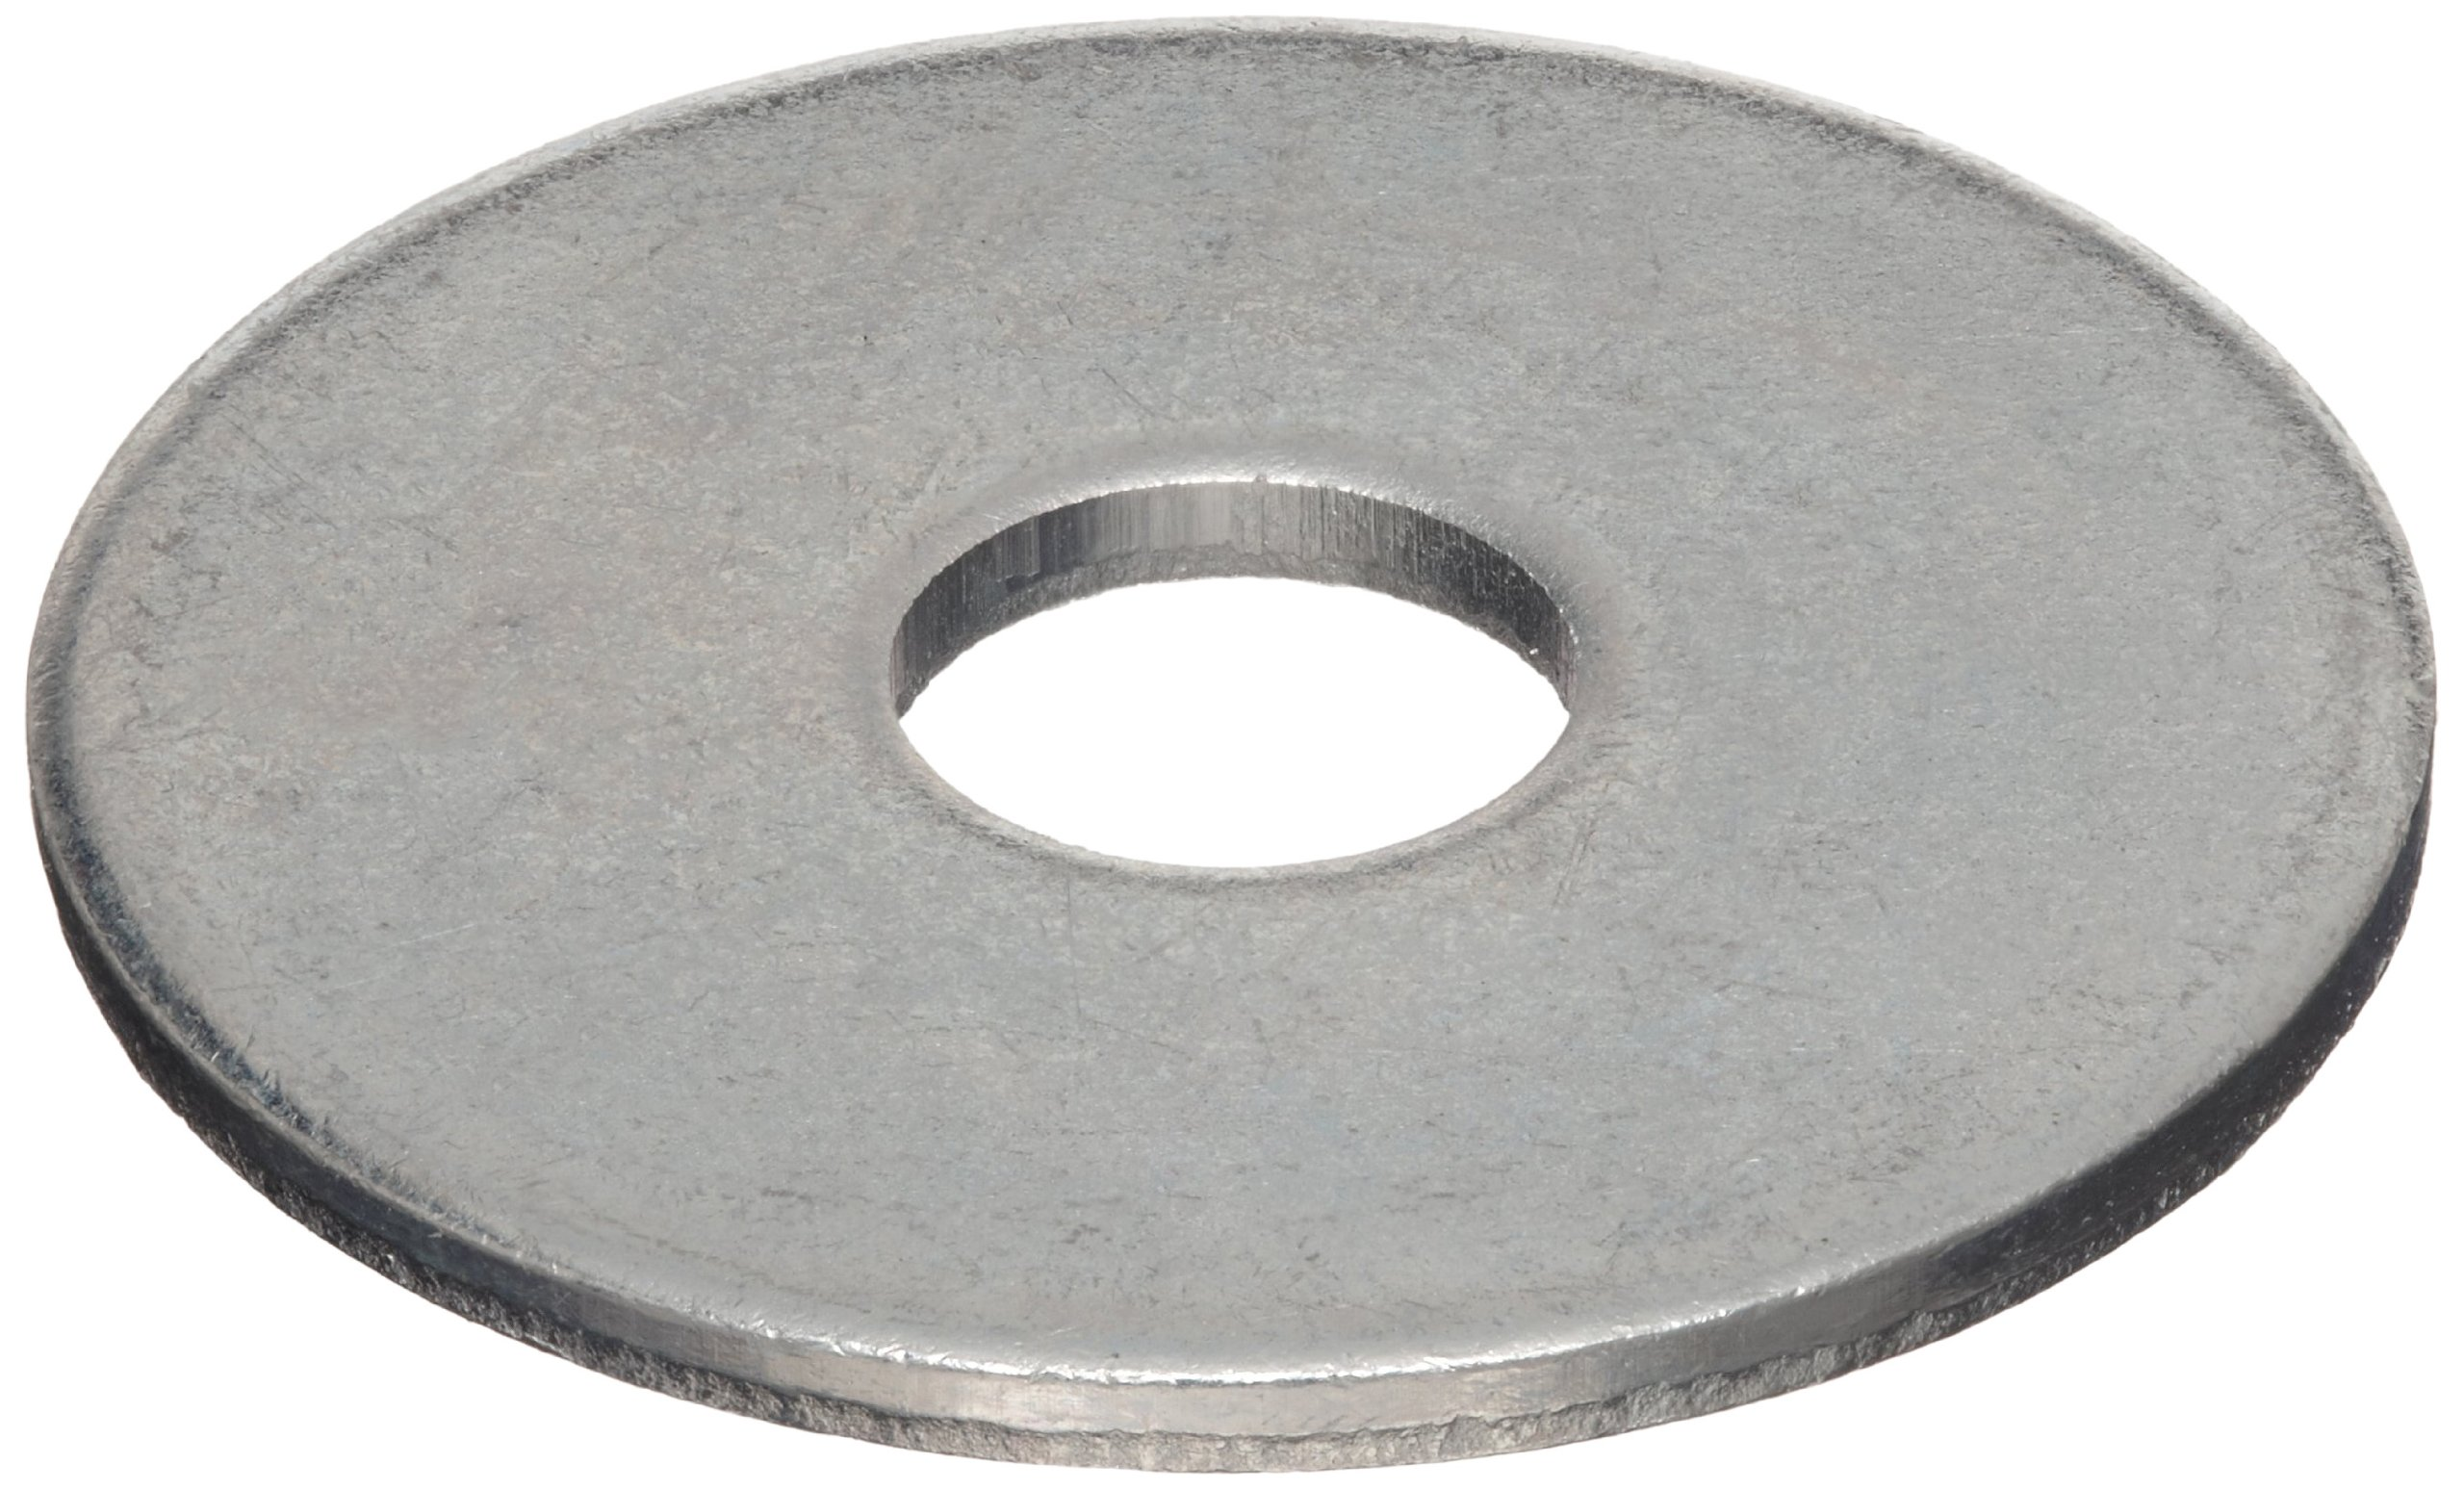 Steel Type B Flat Washer, Zinc Plated Finish, 5/16'' Hole Size, 0.406'' ID, 1.250'' OD, 0.101'' Nominal Thickness, Made in US (Pack of 25)